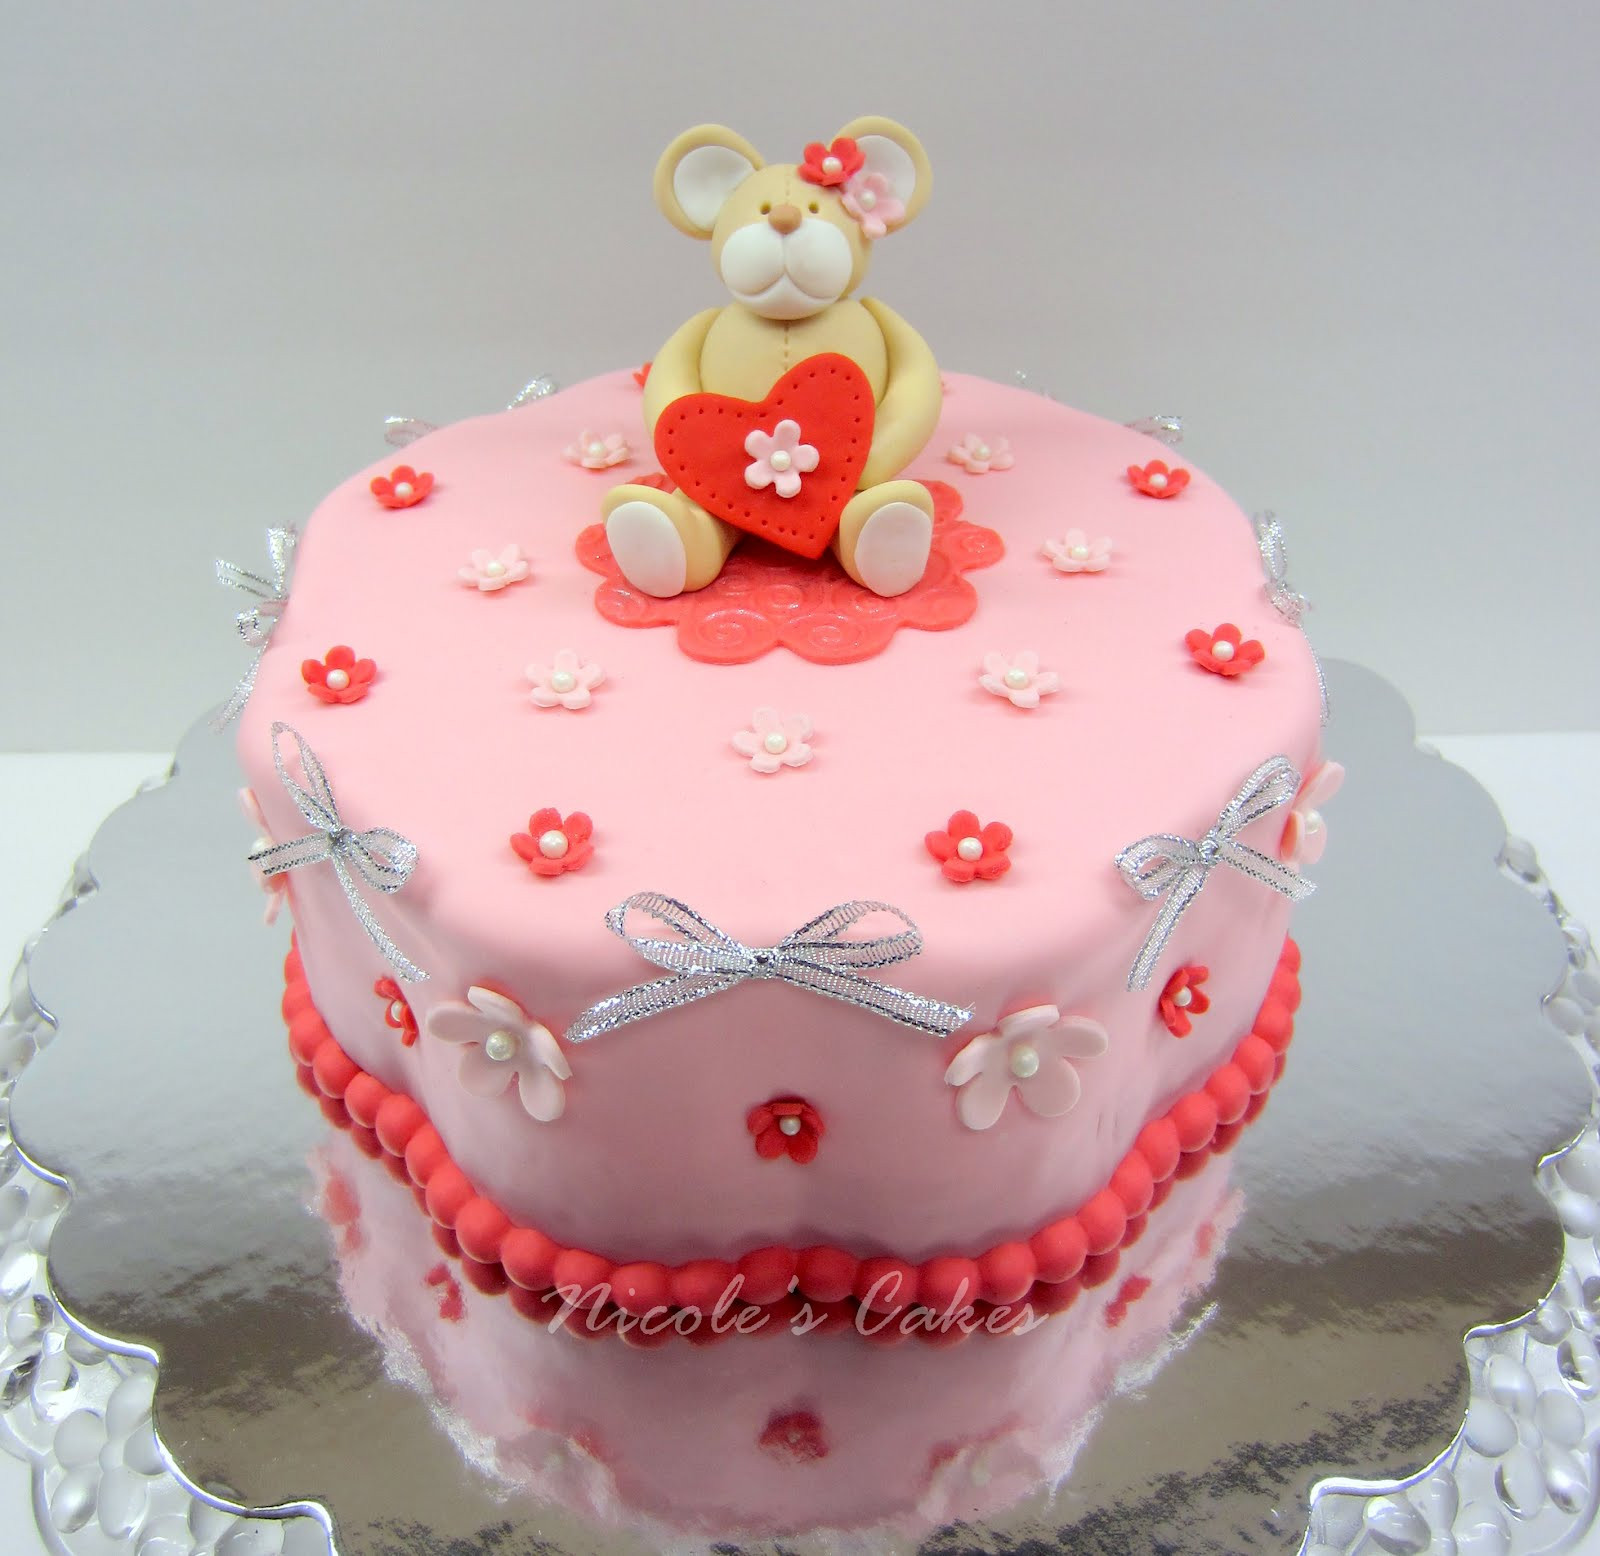 Best ideas about Valentine Birthday Cake . Save or Pin Confections Cakes & Creations A Valentine s Birthday Cake Now.